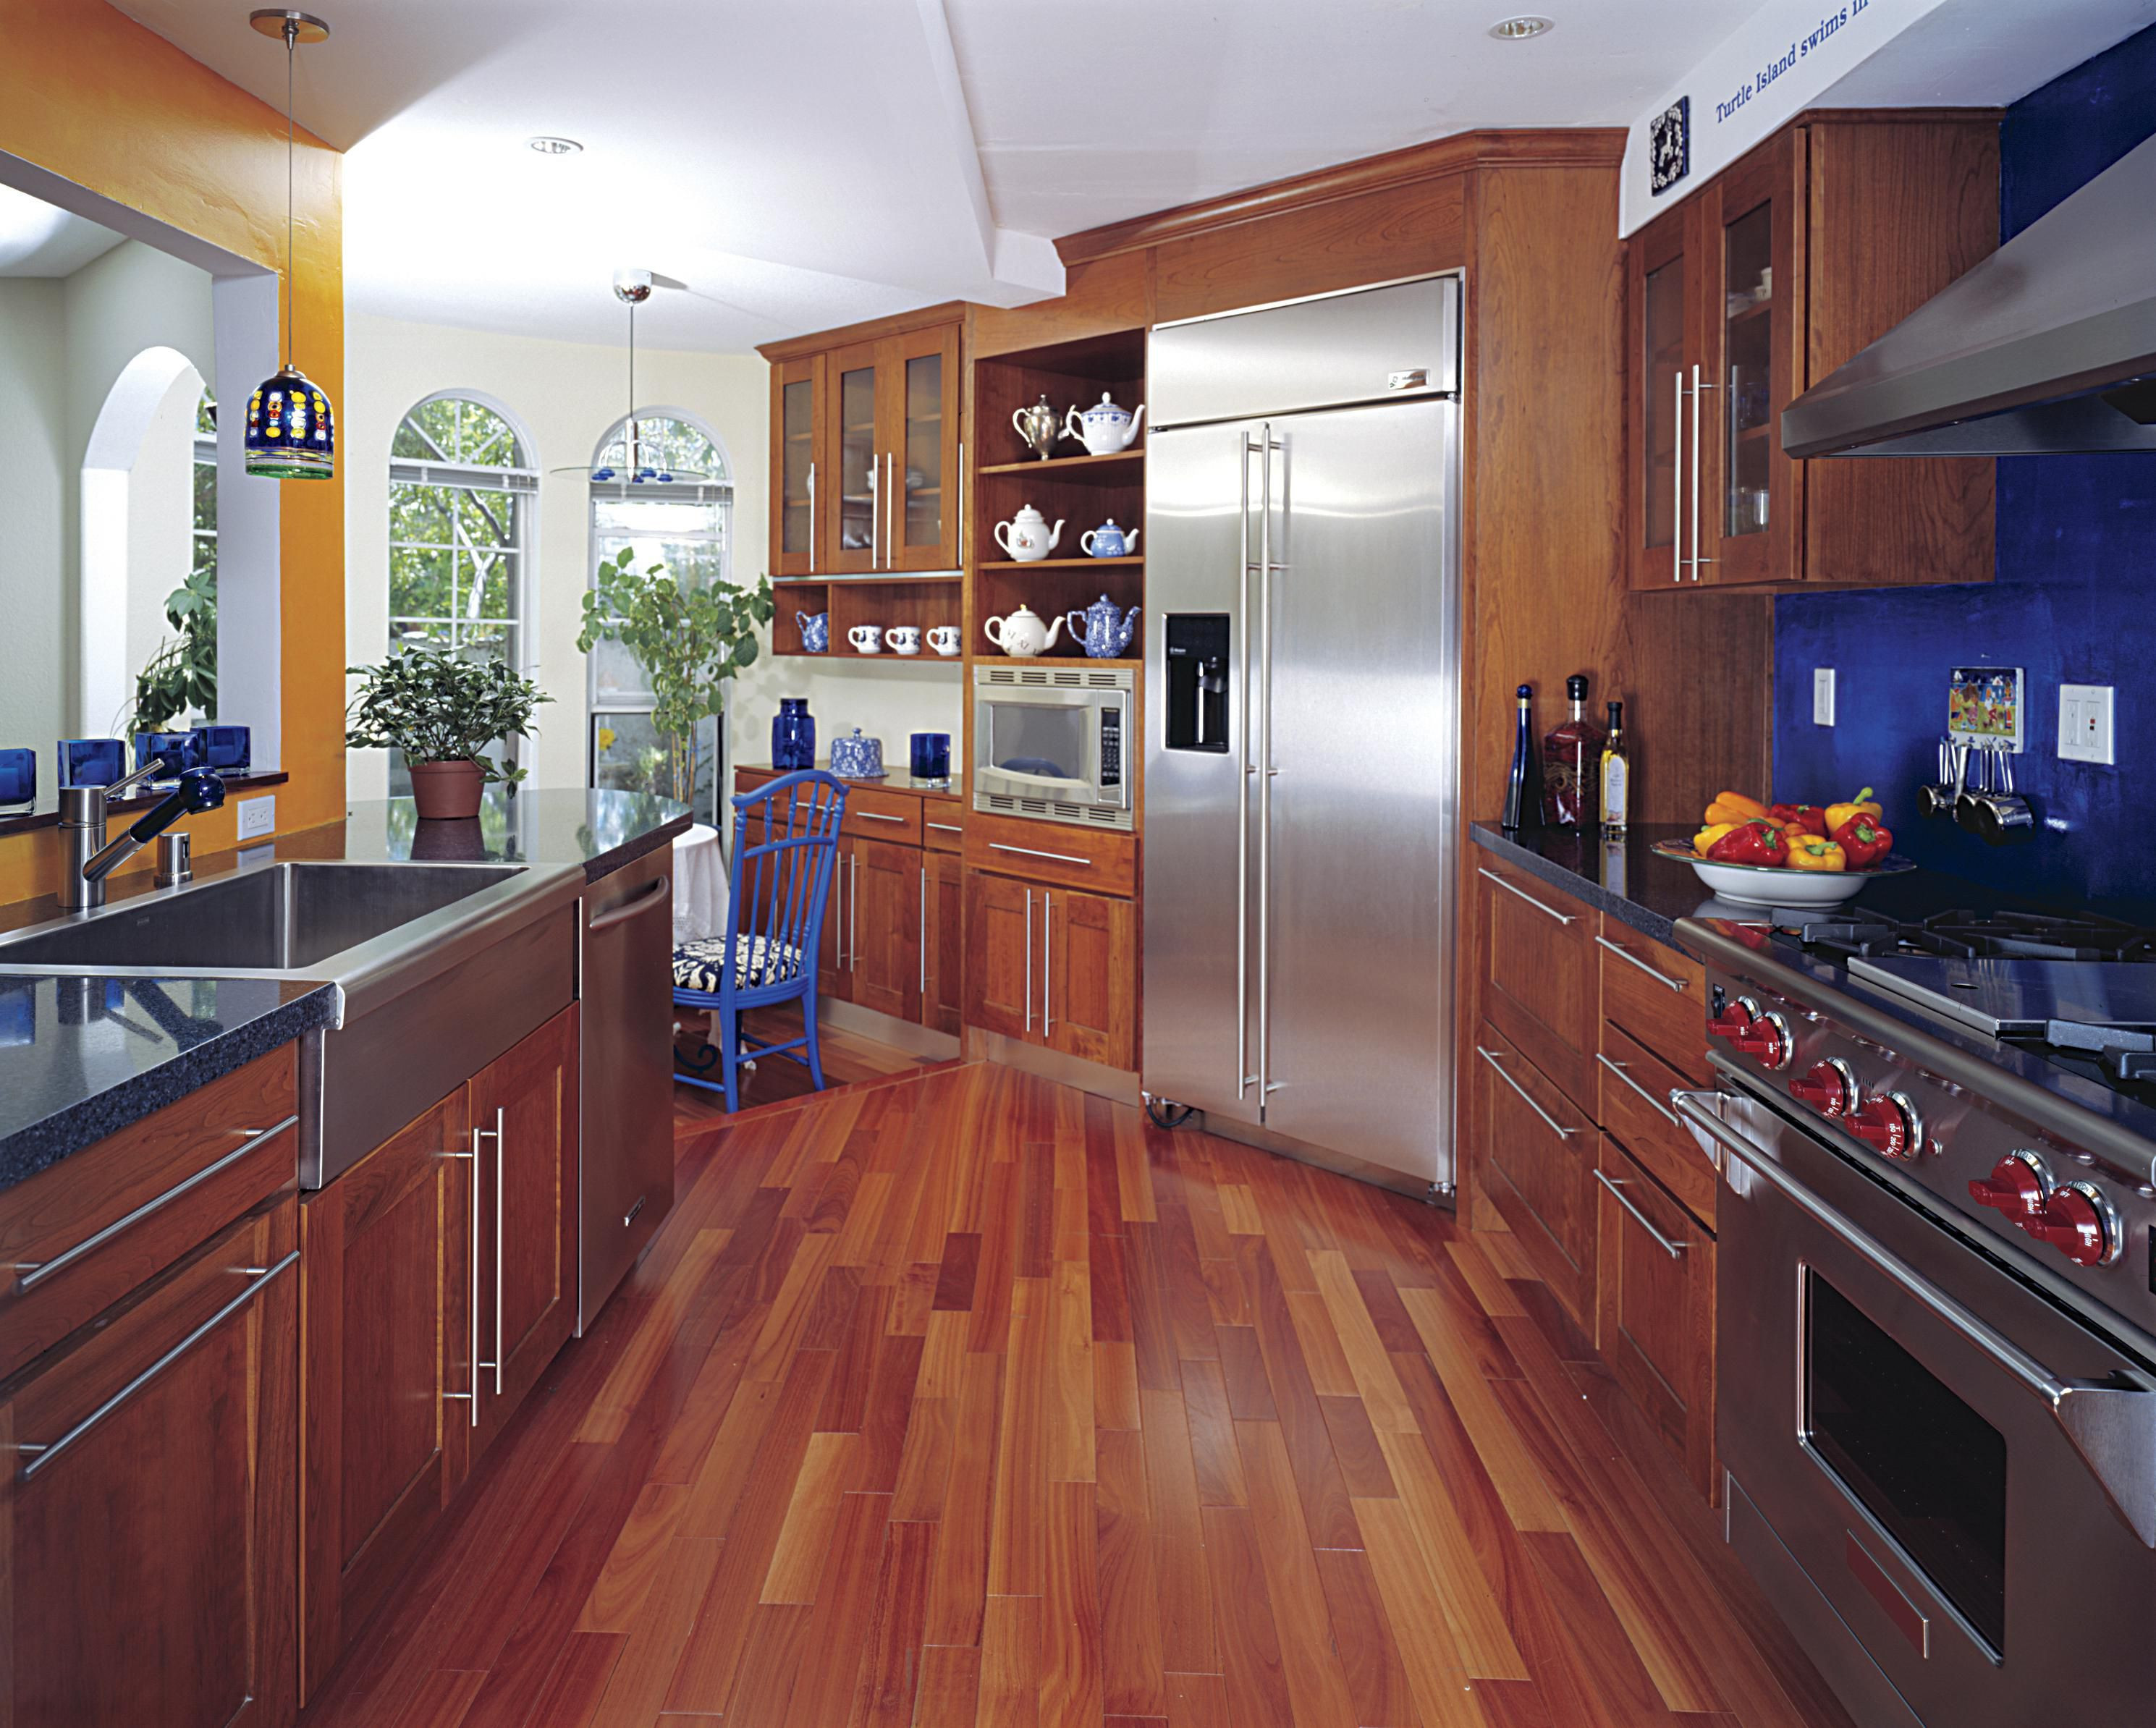 Hickory Hardwood Floor Stain Colors Of Hardwood Floor In A Kitchen is This Allowed for 186828472 56a49f3a5f9b58b7d0d7e142